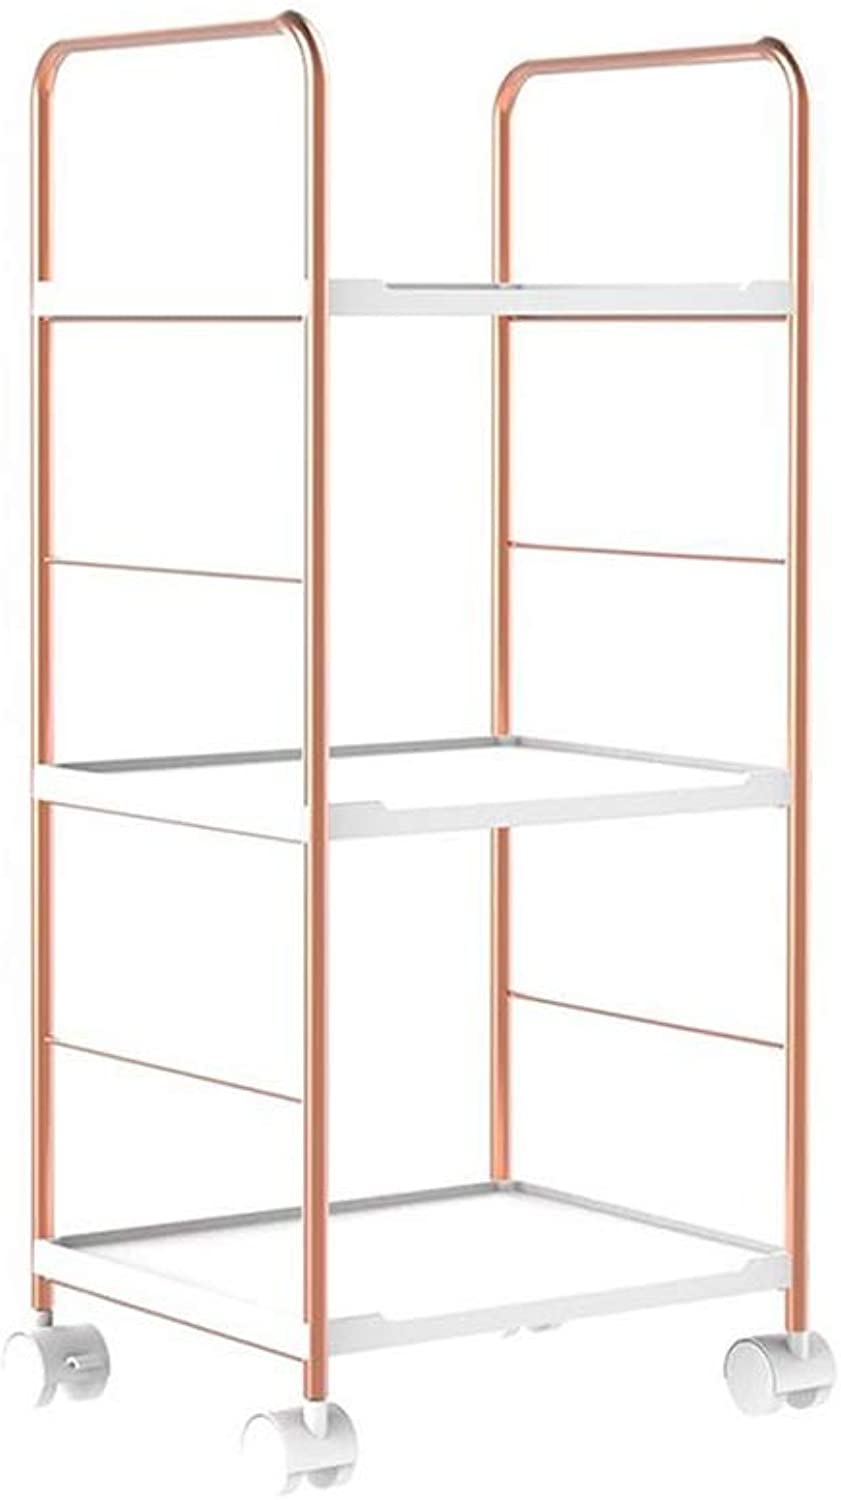 JCAFA Shelves Bookshelf Floor-Mounted Assembly Moving Pulley File Organiser Rack Metal Frame Storage Shelves ,Living Room Bedroom (color   pink gold, Size   12.20  10.23  28.74in)